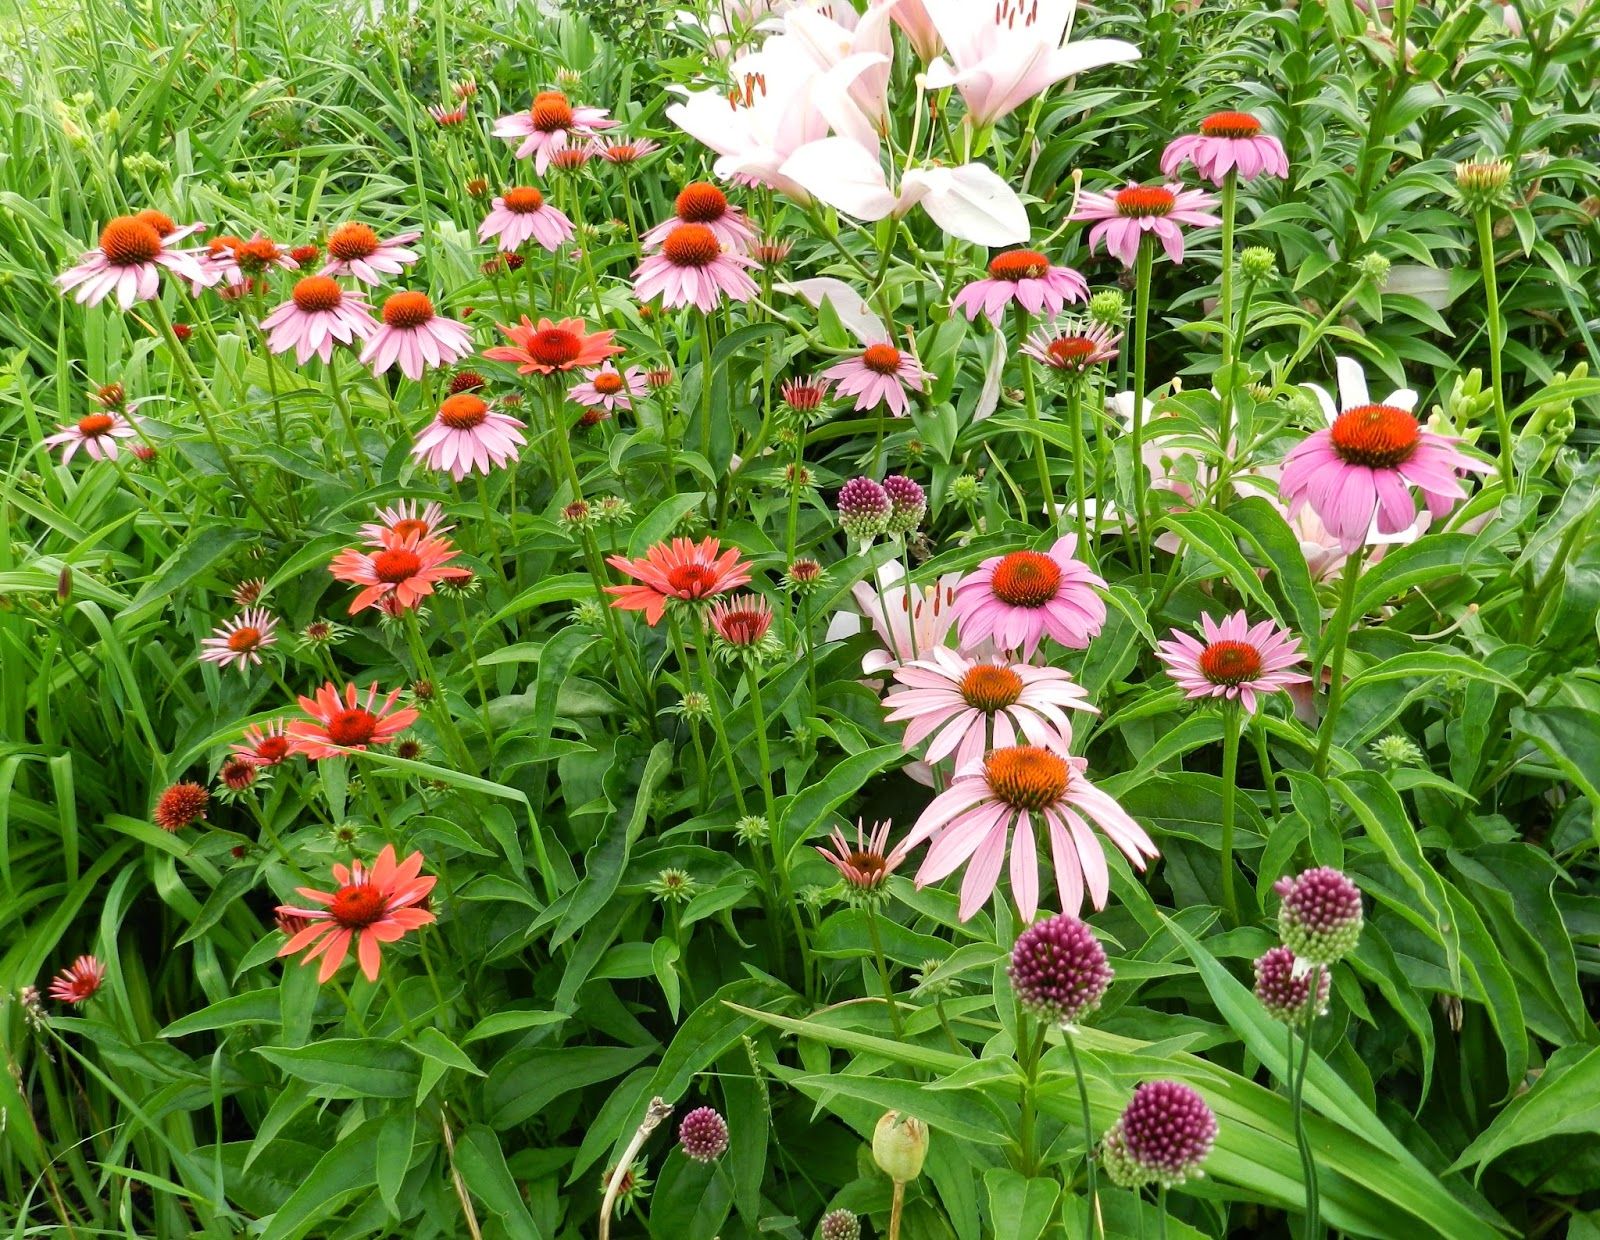 Prairie Rose s Garden GGBD What Do You Call a Plethora of Coneflowers